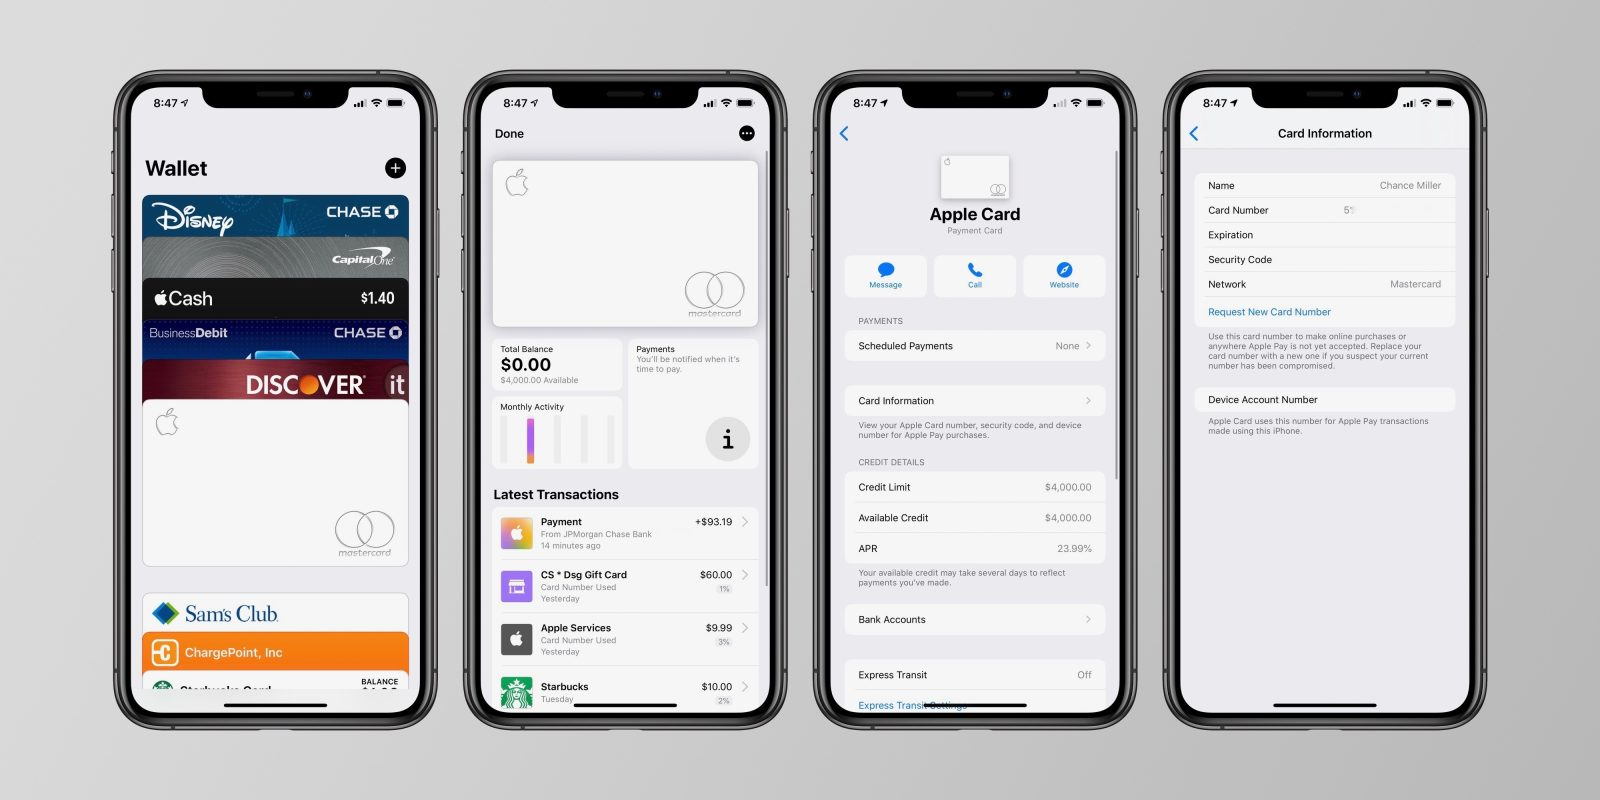 Apple Card: How to view your card number in the Wallet app